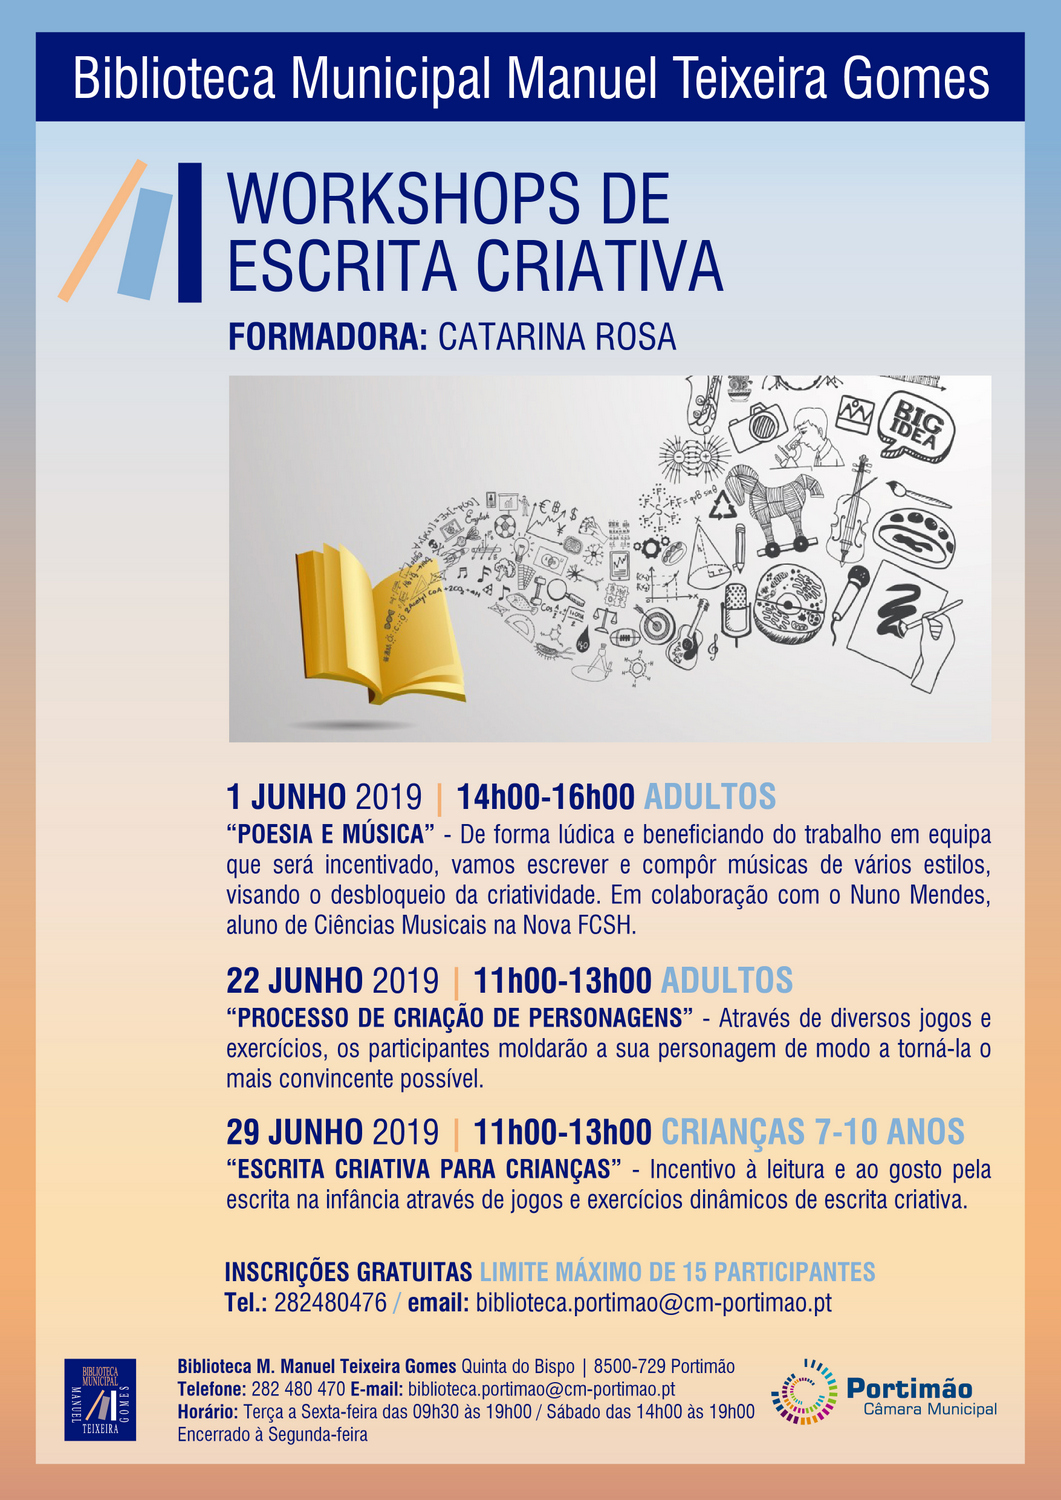 Workshops de Escrita Criativa por Catarina Rosa